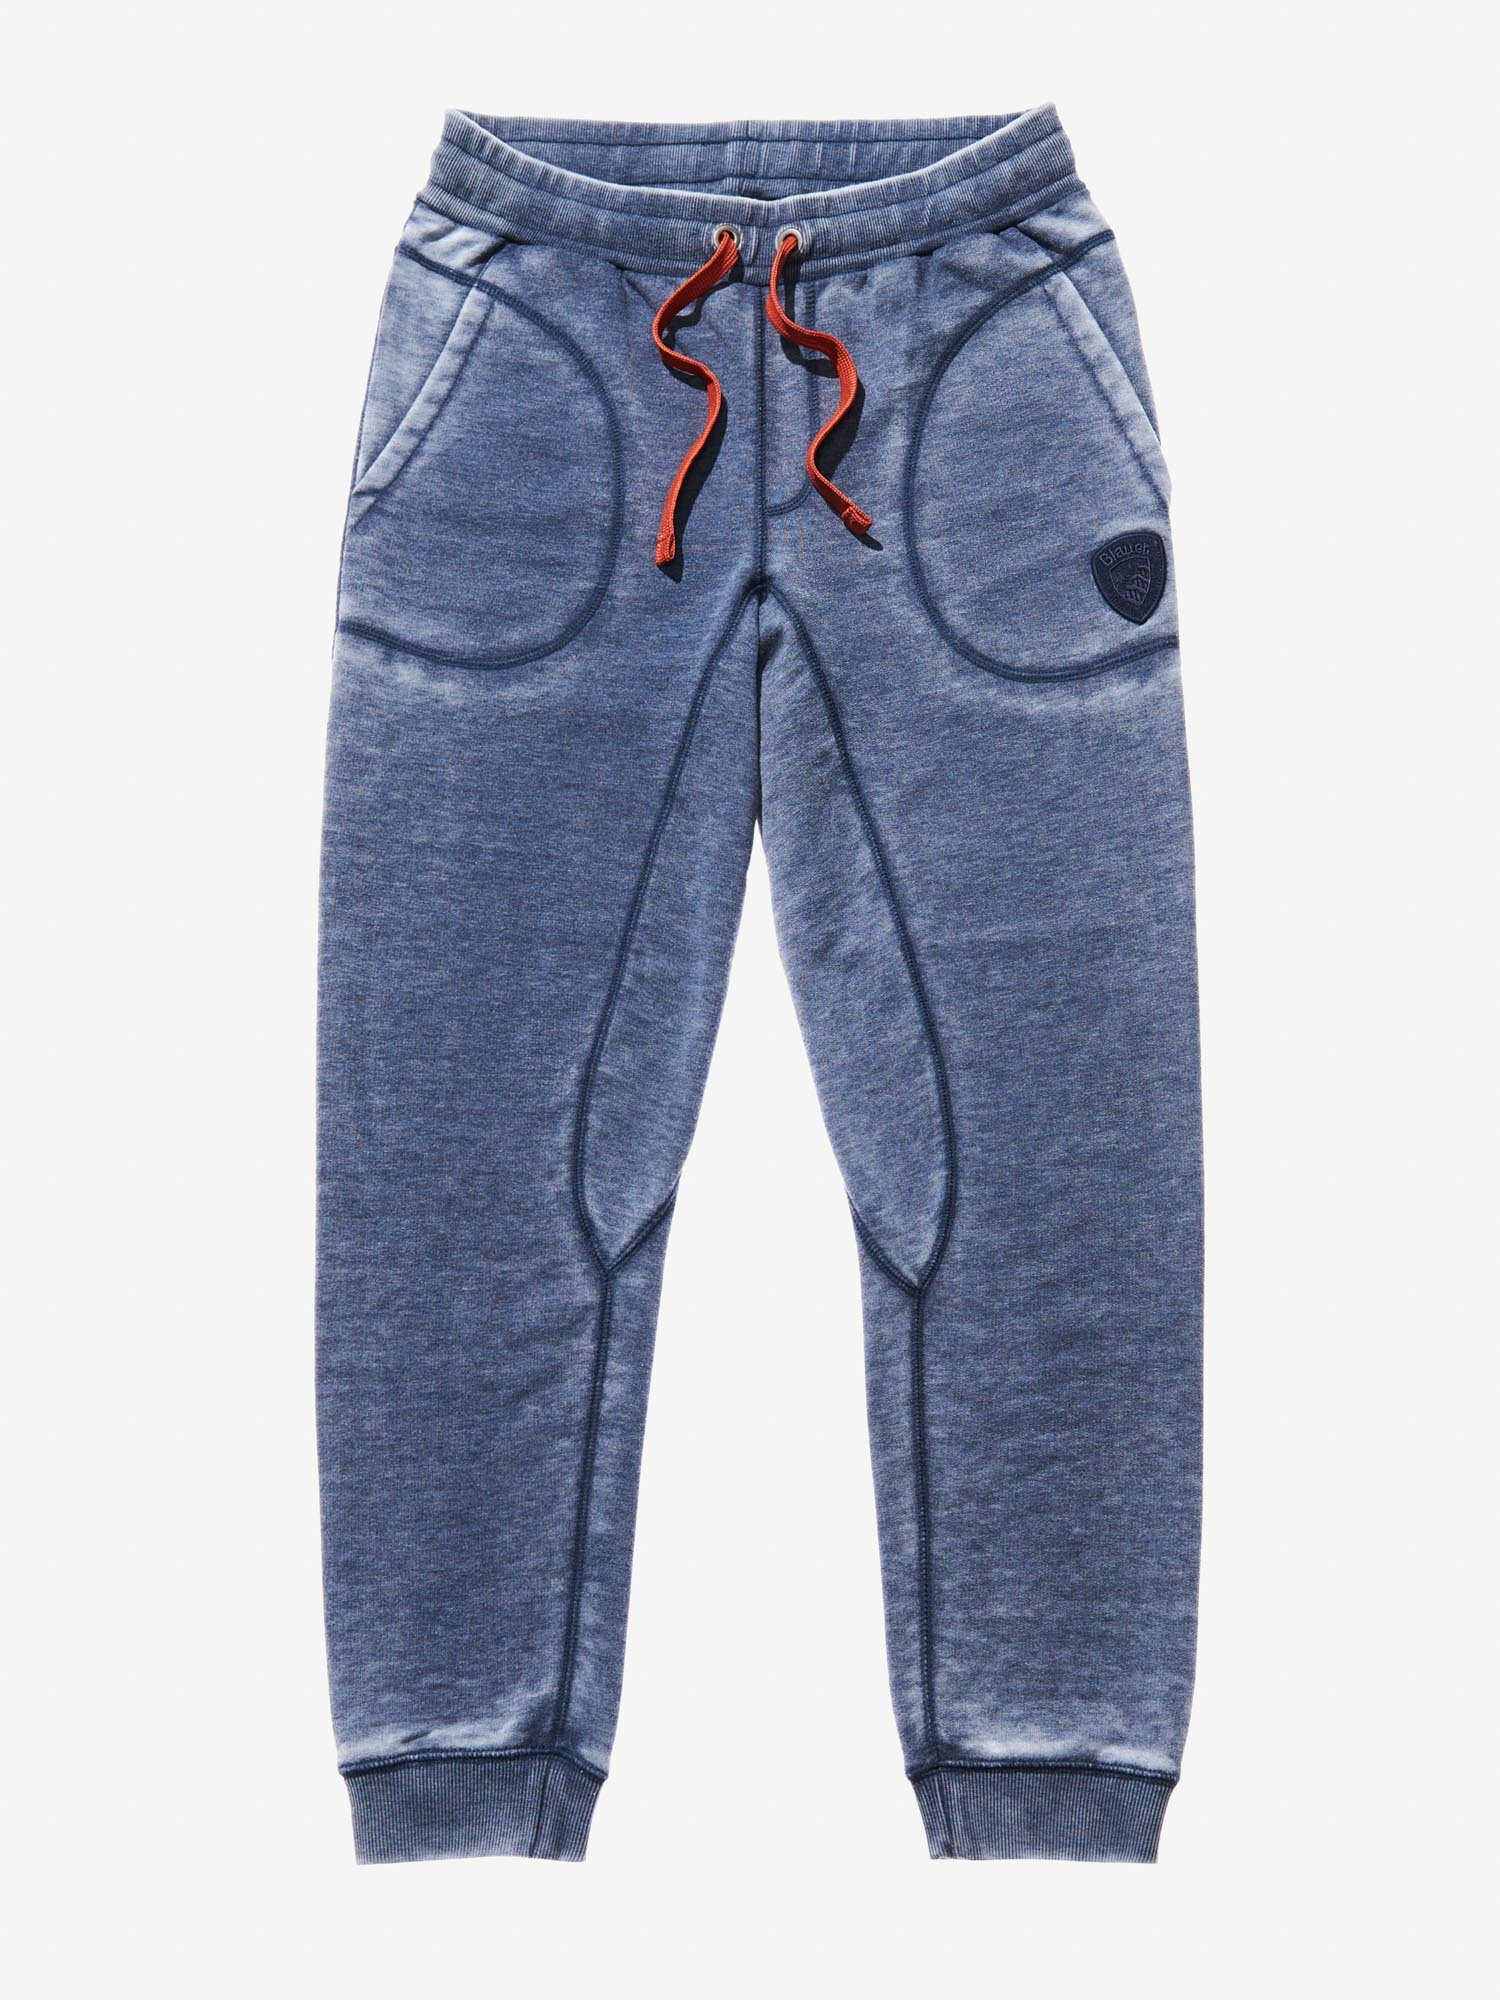 BURNOUT SWEATPANTS - Blauer